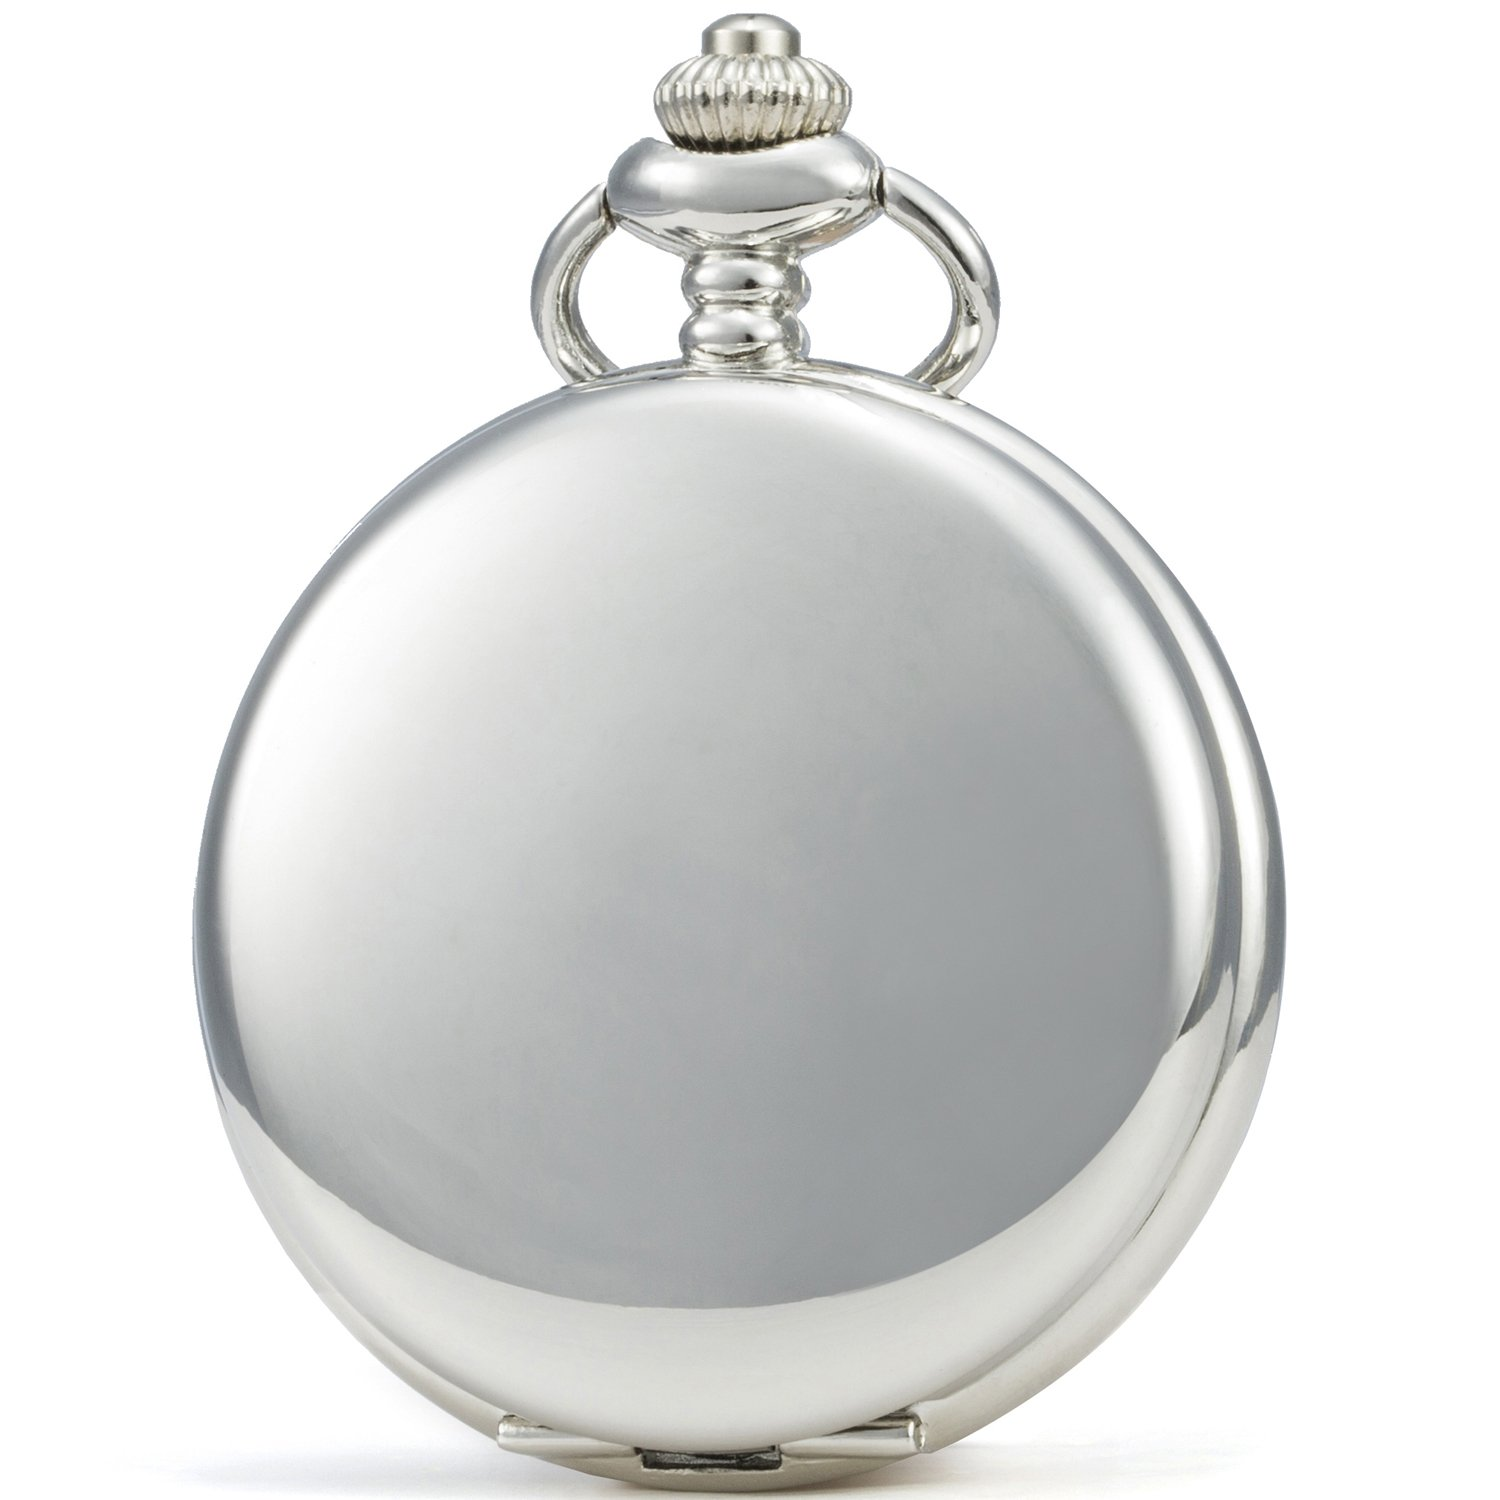 SEWOR Vintage Smooth Face Pocket Watch Classic Gift With Brand Leather Box (Sliver)